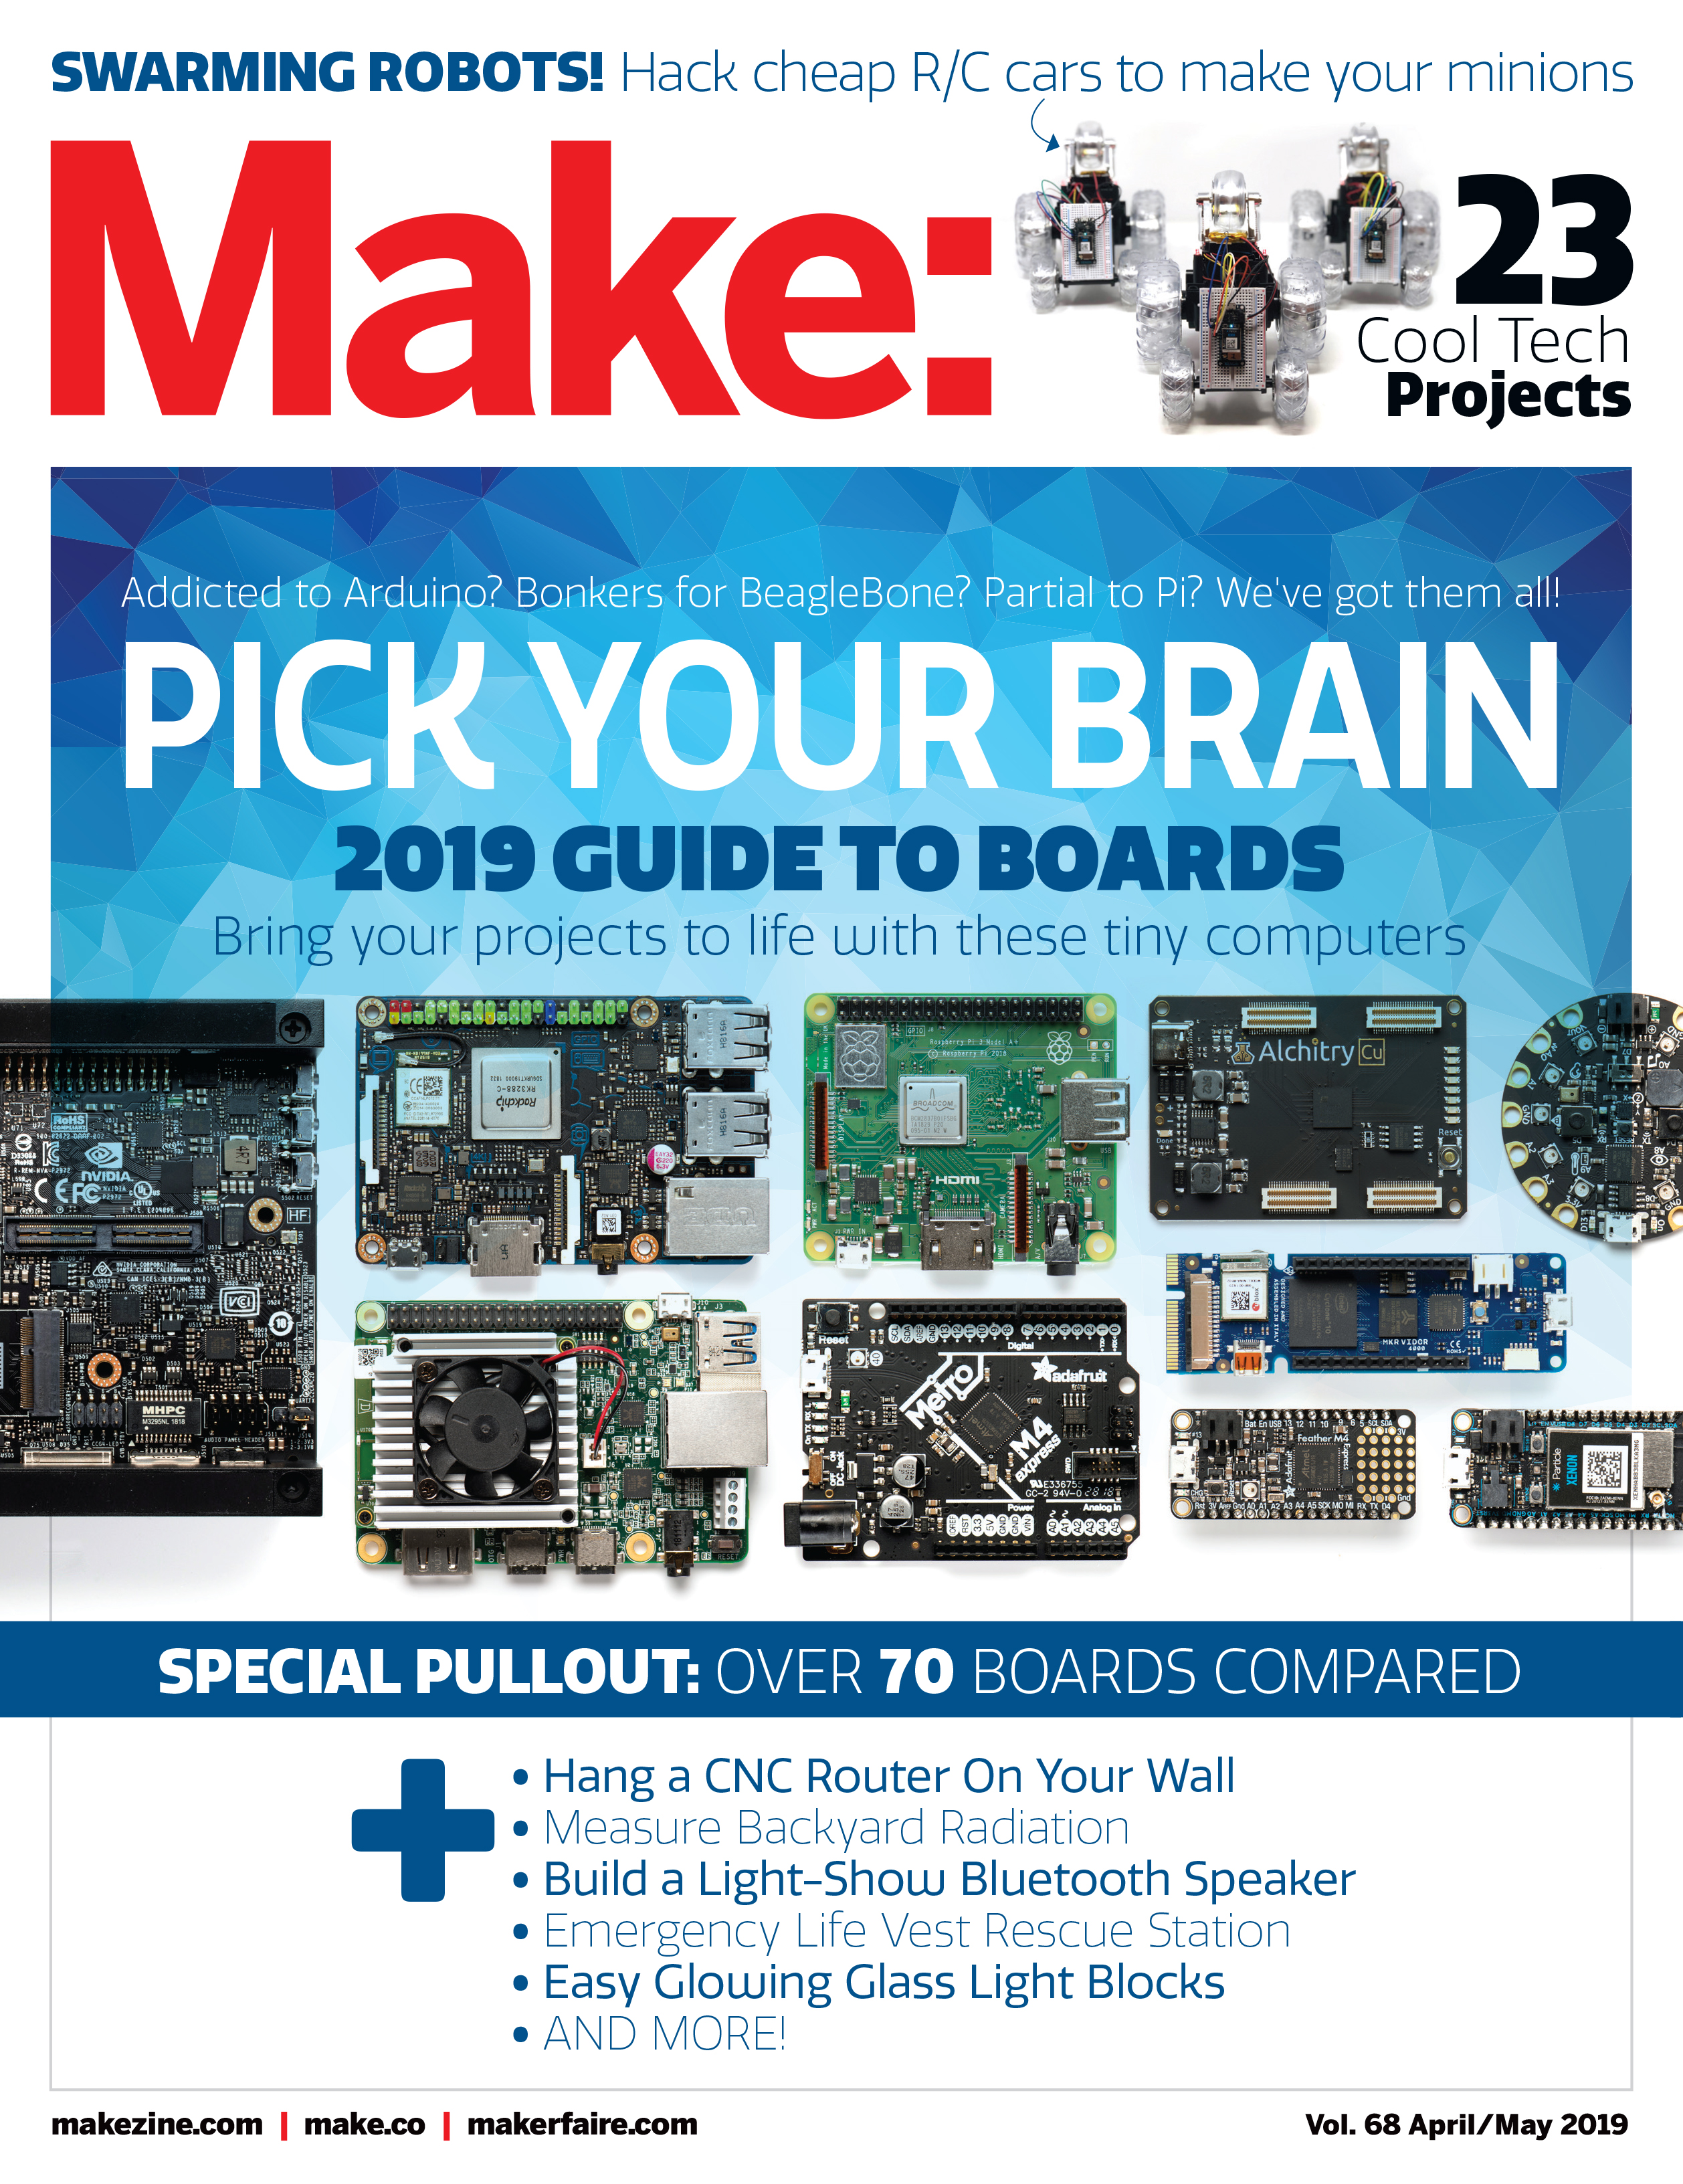 Make (Technology on Your Time) - Digital Magazine